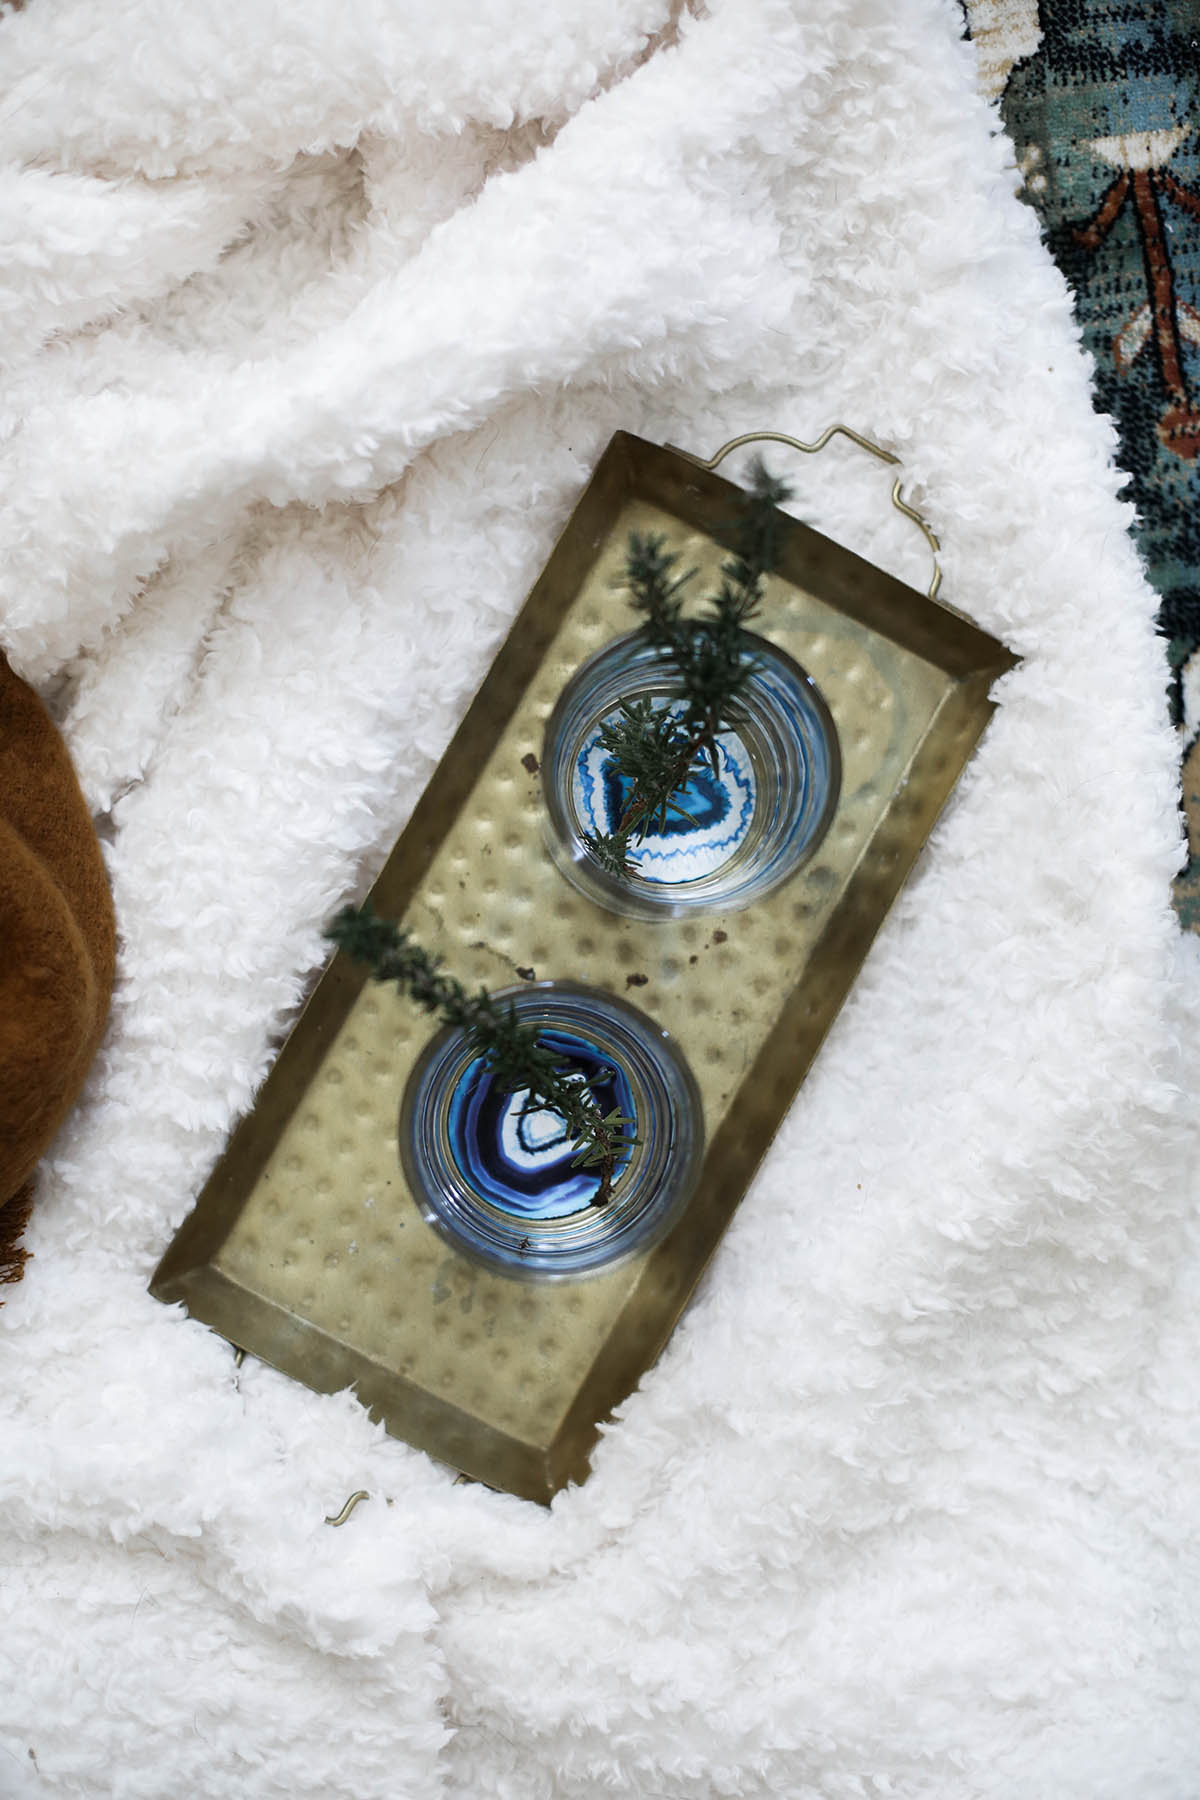 urban outfitters geode bottom glasses with gold tray and fleece throw blanket